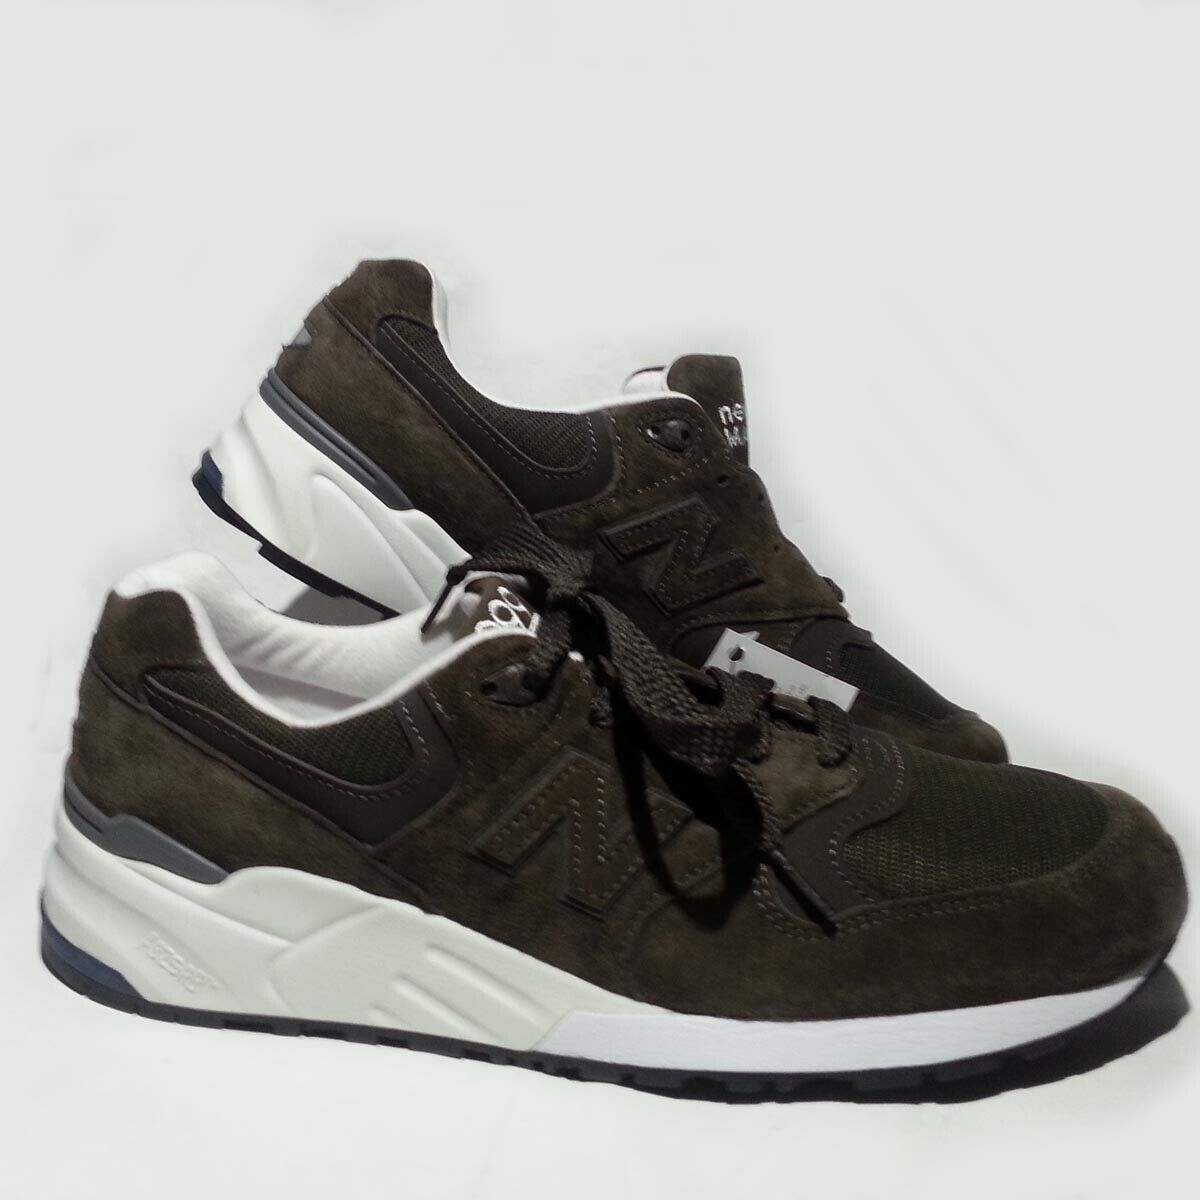 New Balance 999 Men Size 10.5 Sneakers Olive Green Made in USA